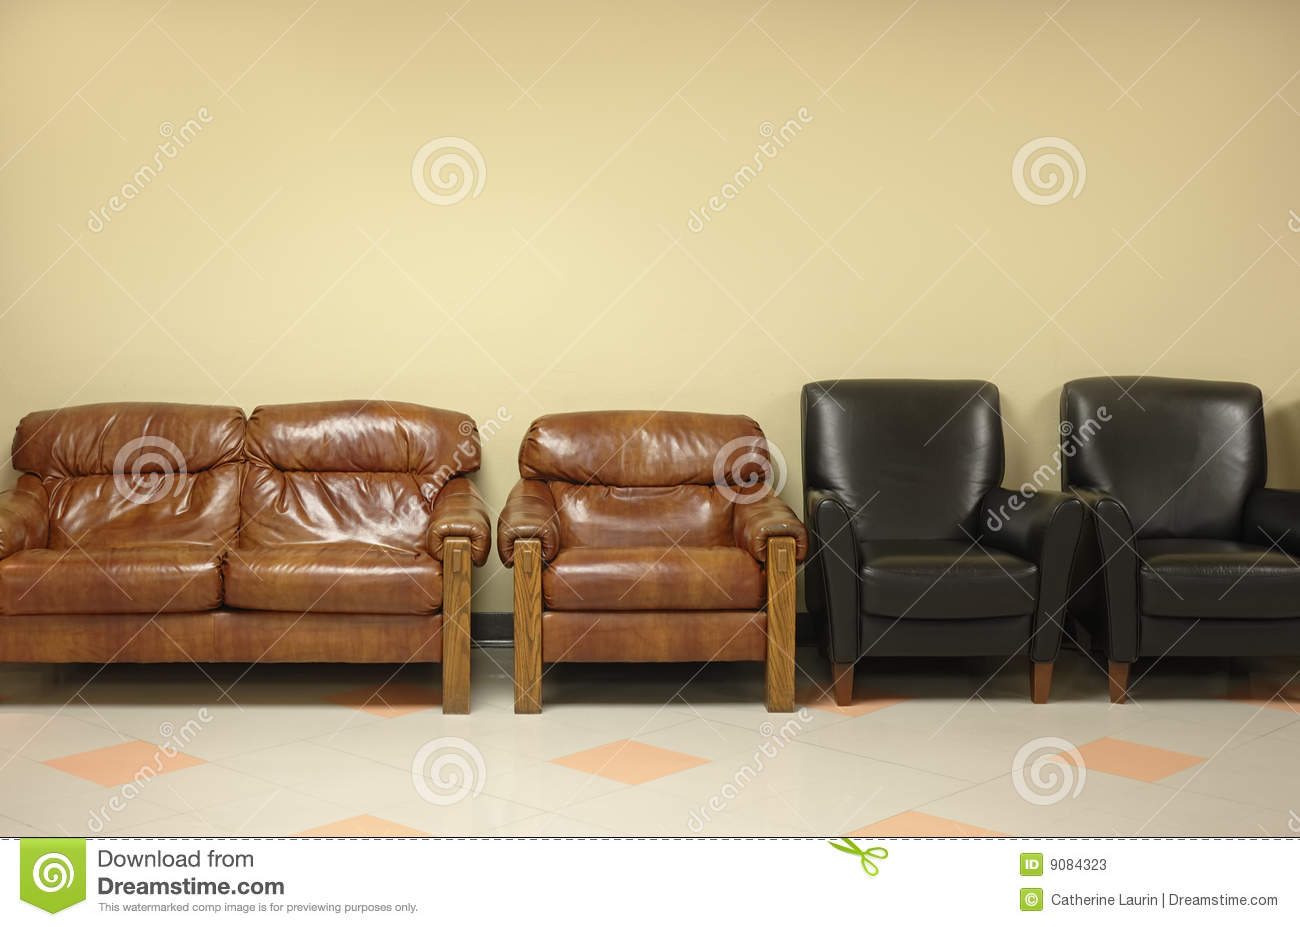 Mission chair leather - Waiting Room With Leather Chairs Stock Photos